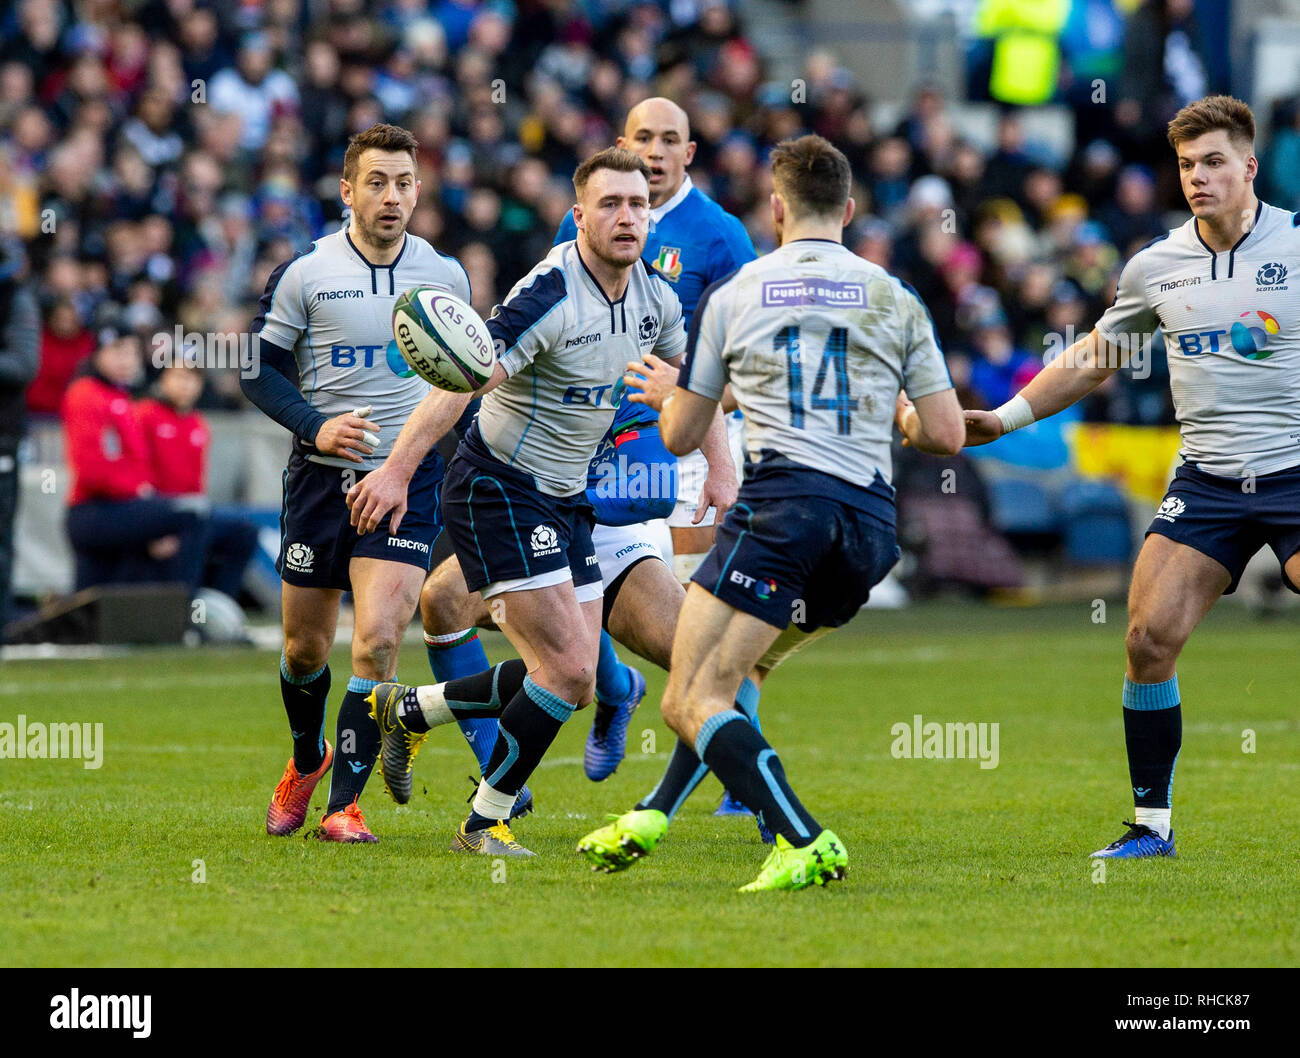 Scotland, UK. 2nd Feb 2019. : Scotland Full-Back, Stuart Hogg offloads the ball to Winger, Tommy Seymour,  during the first half as Scotland play host to Italy in their opening game of the 2019 6 Nations Championship at Murrayfield Stadium, Edinburgh on February 2nd, 2019.  (Photo by Ian Jacobs) Credit: Ian Jacobs/Alamy Live News Credit: Ian Jacobs/Alamy Live News Stock Photo